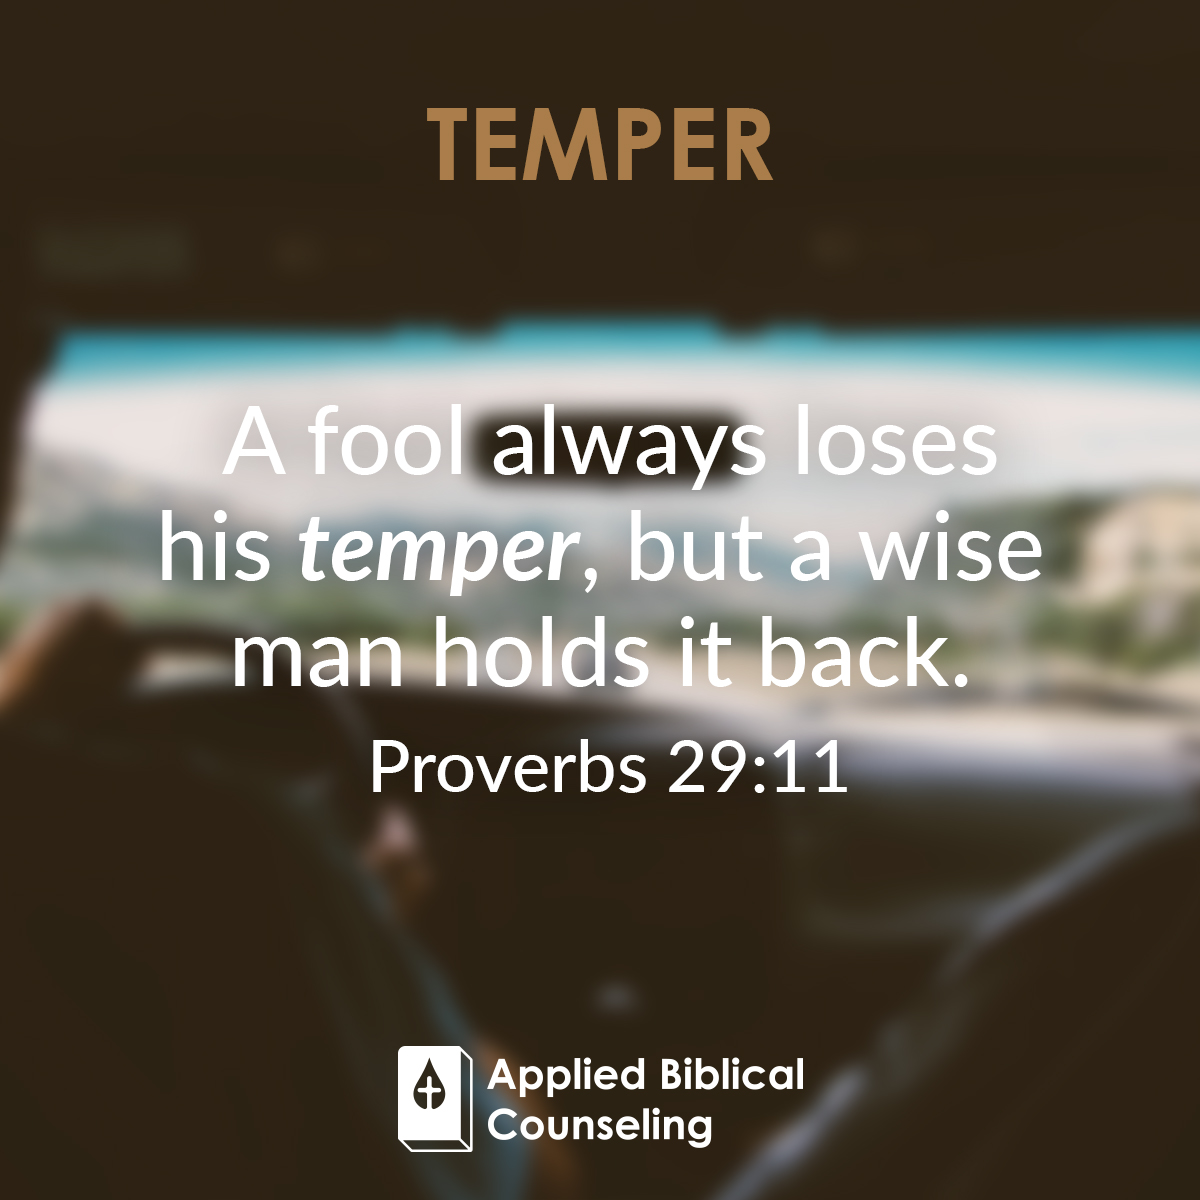 Temper Applied Biblical Counseling 2